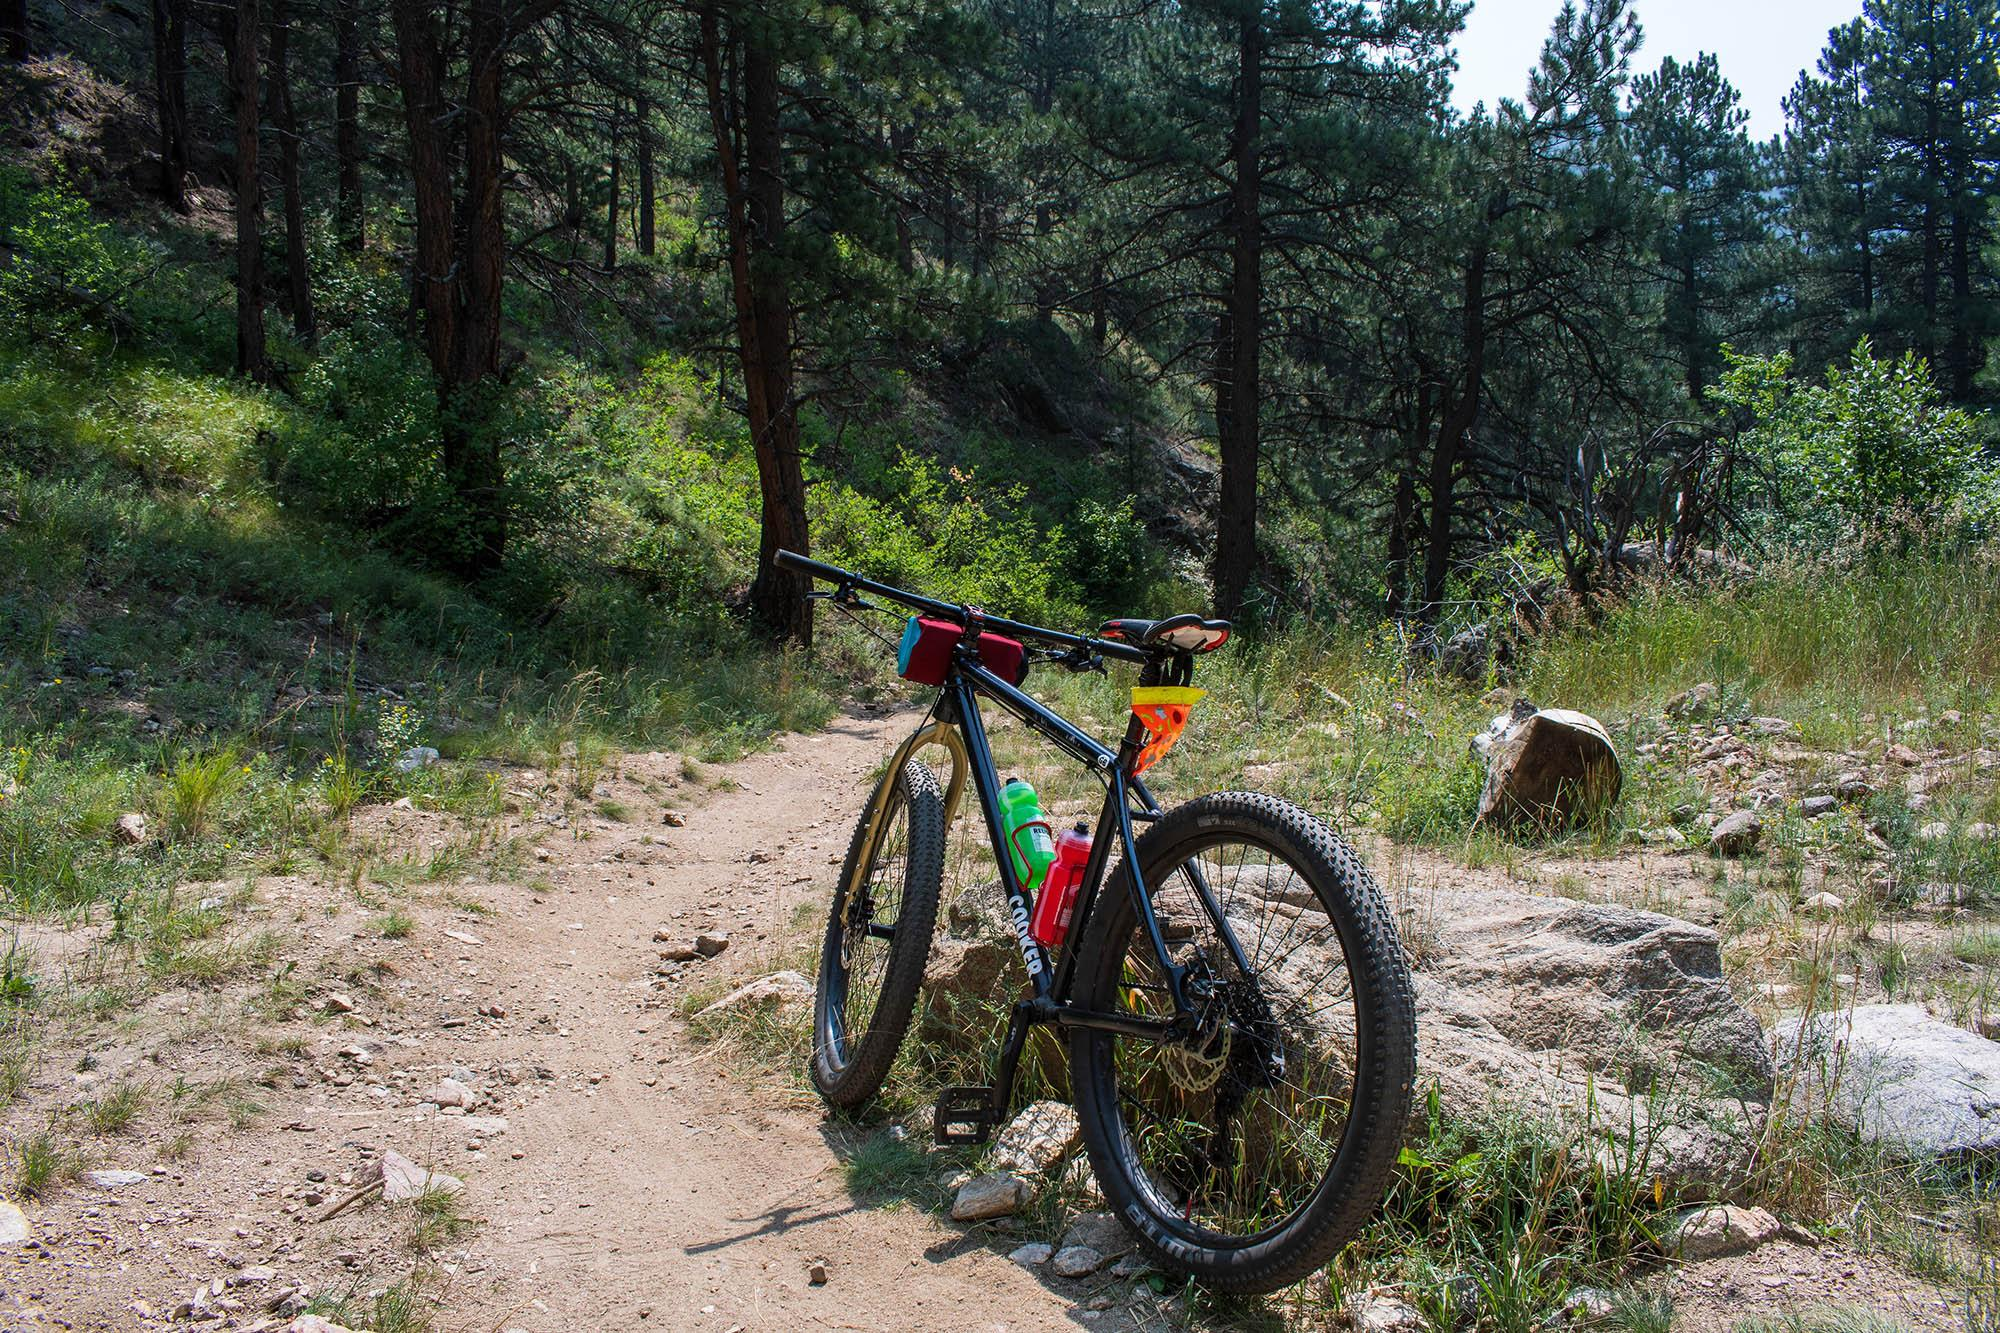 Taylor Phinney's Word of Mouth Ride